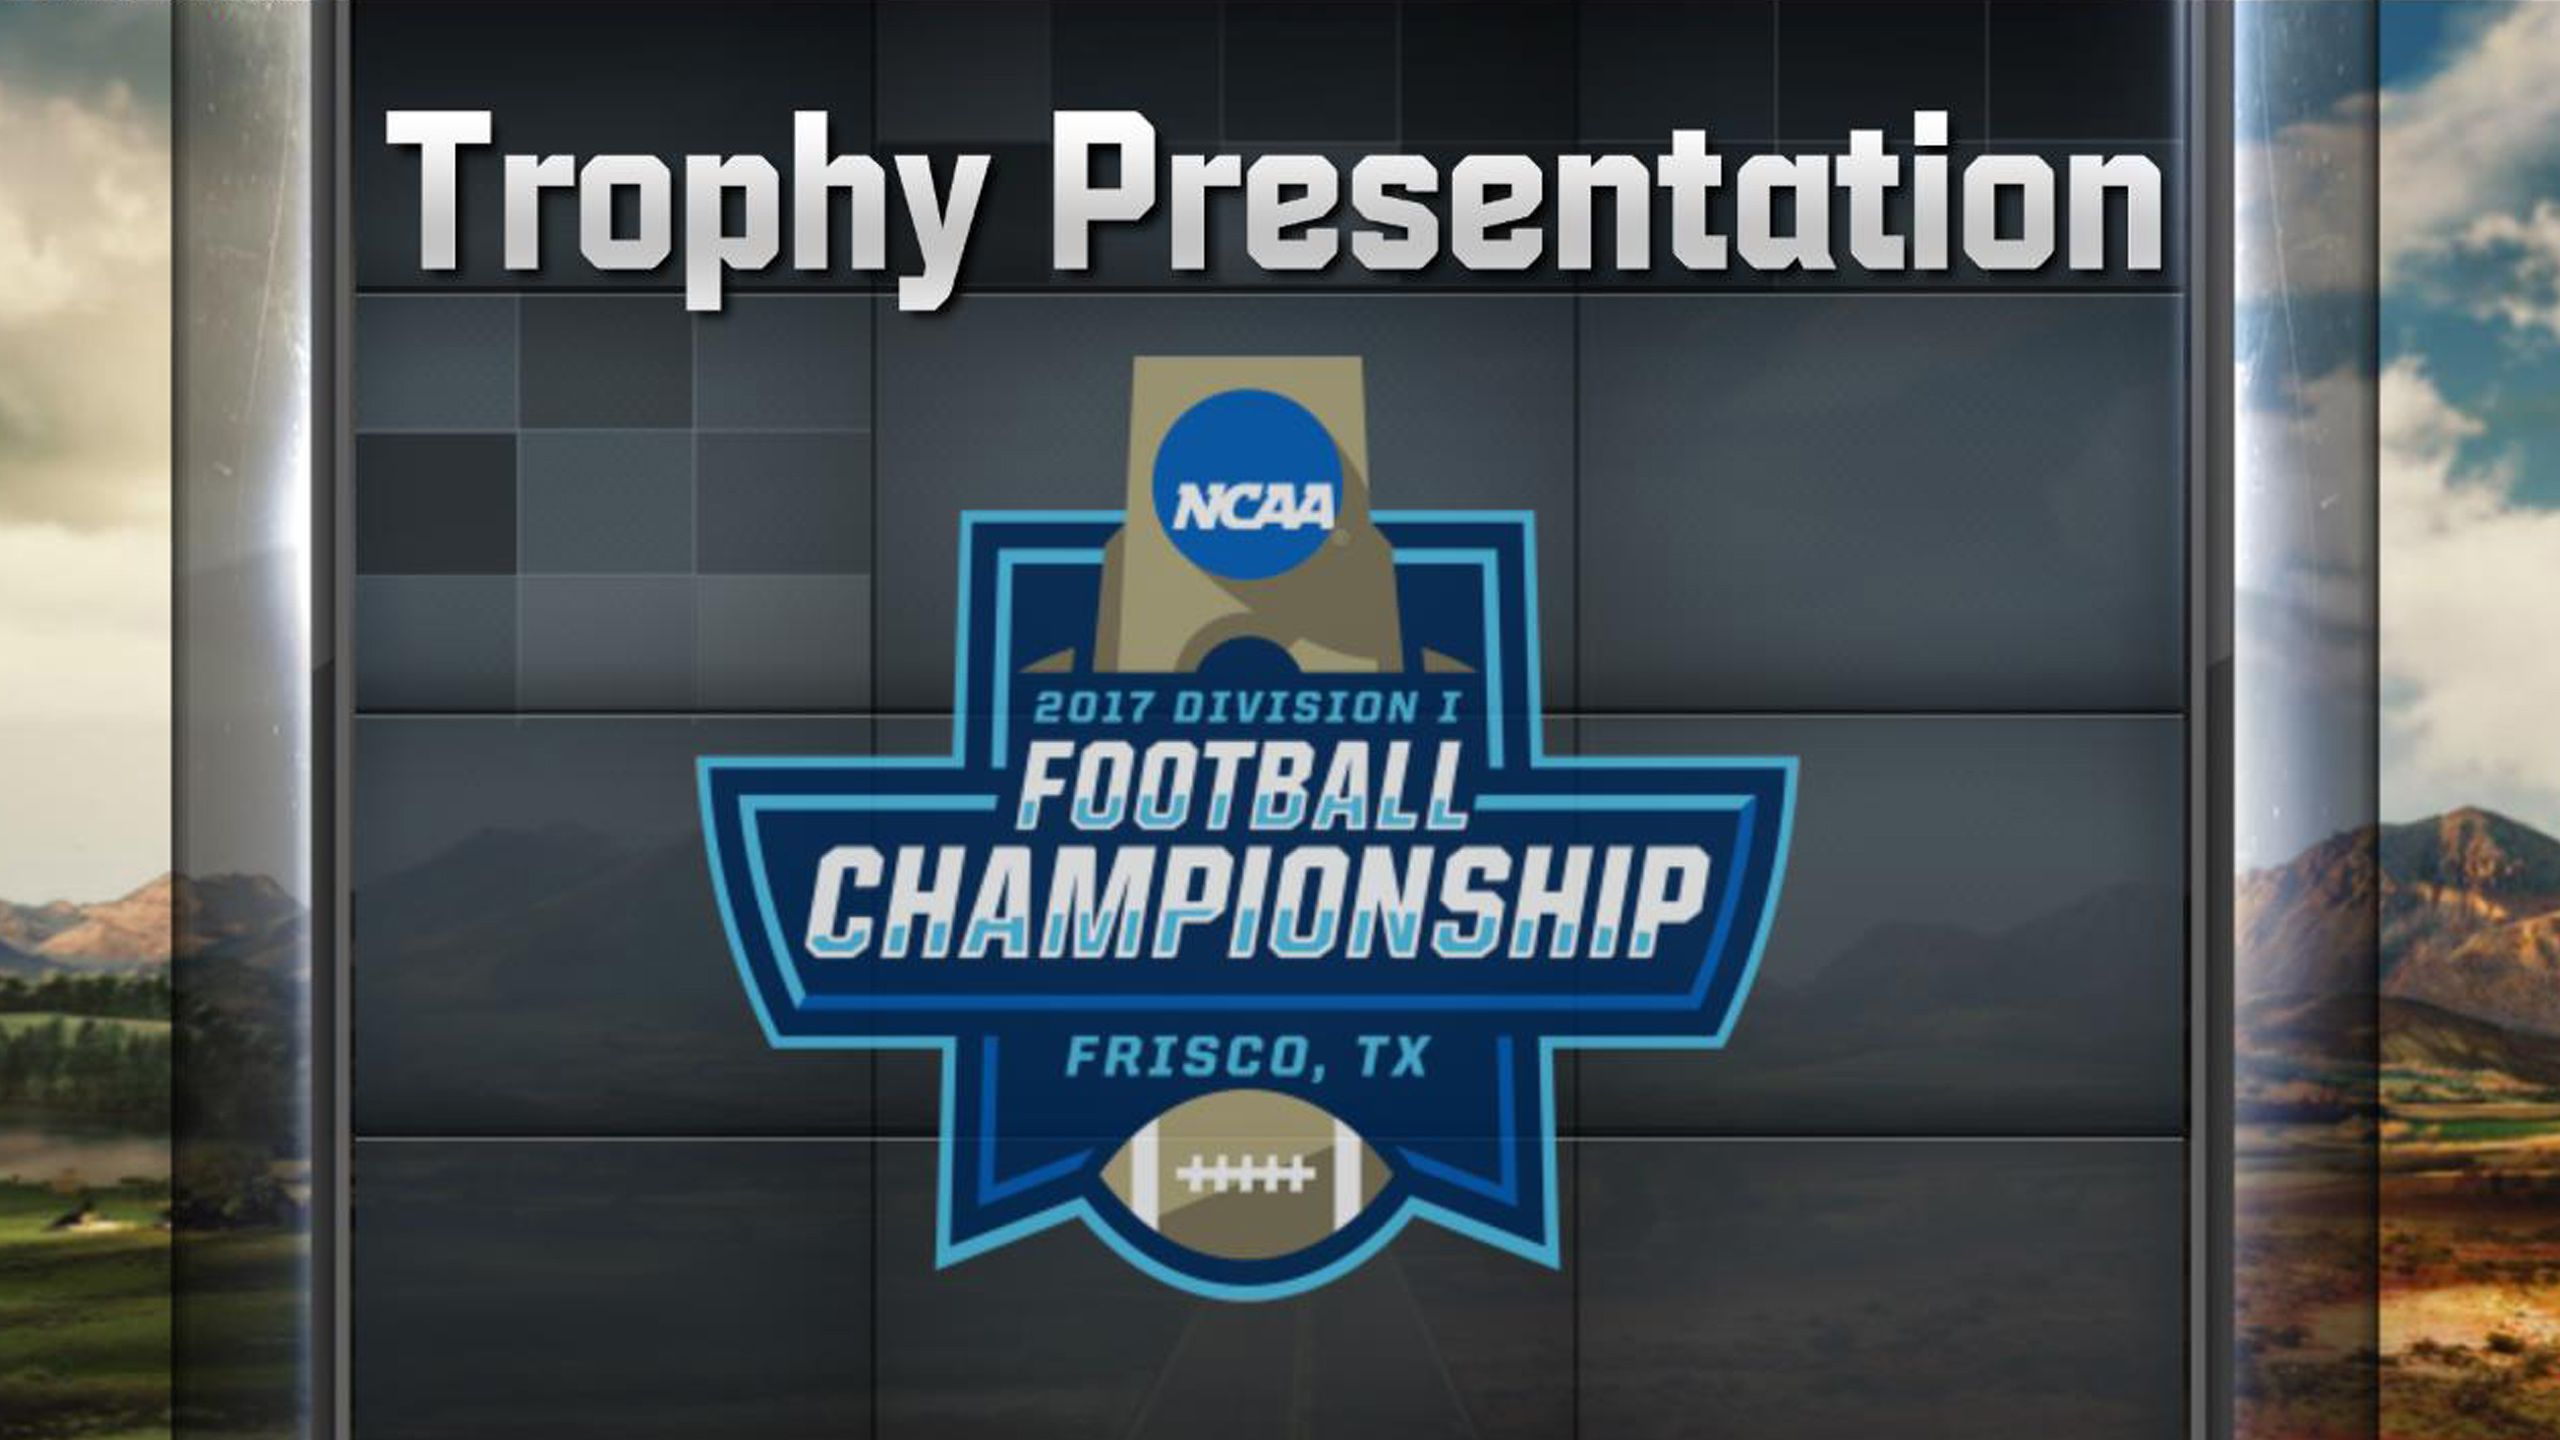 espn schedule when is the ncaa football championship